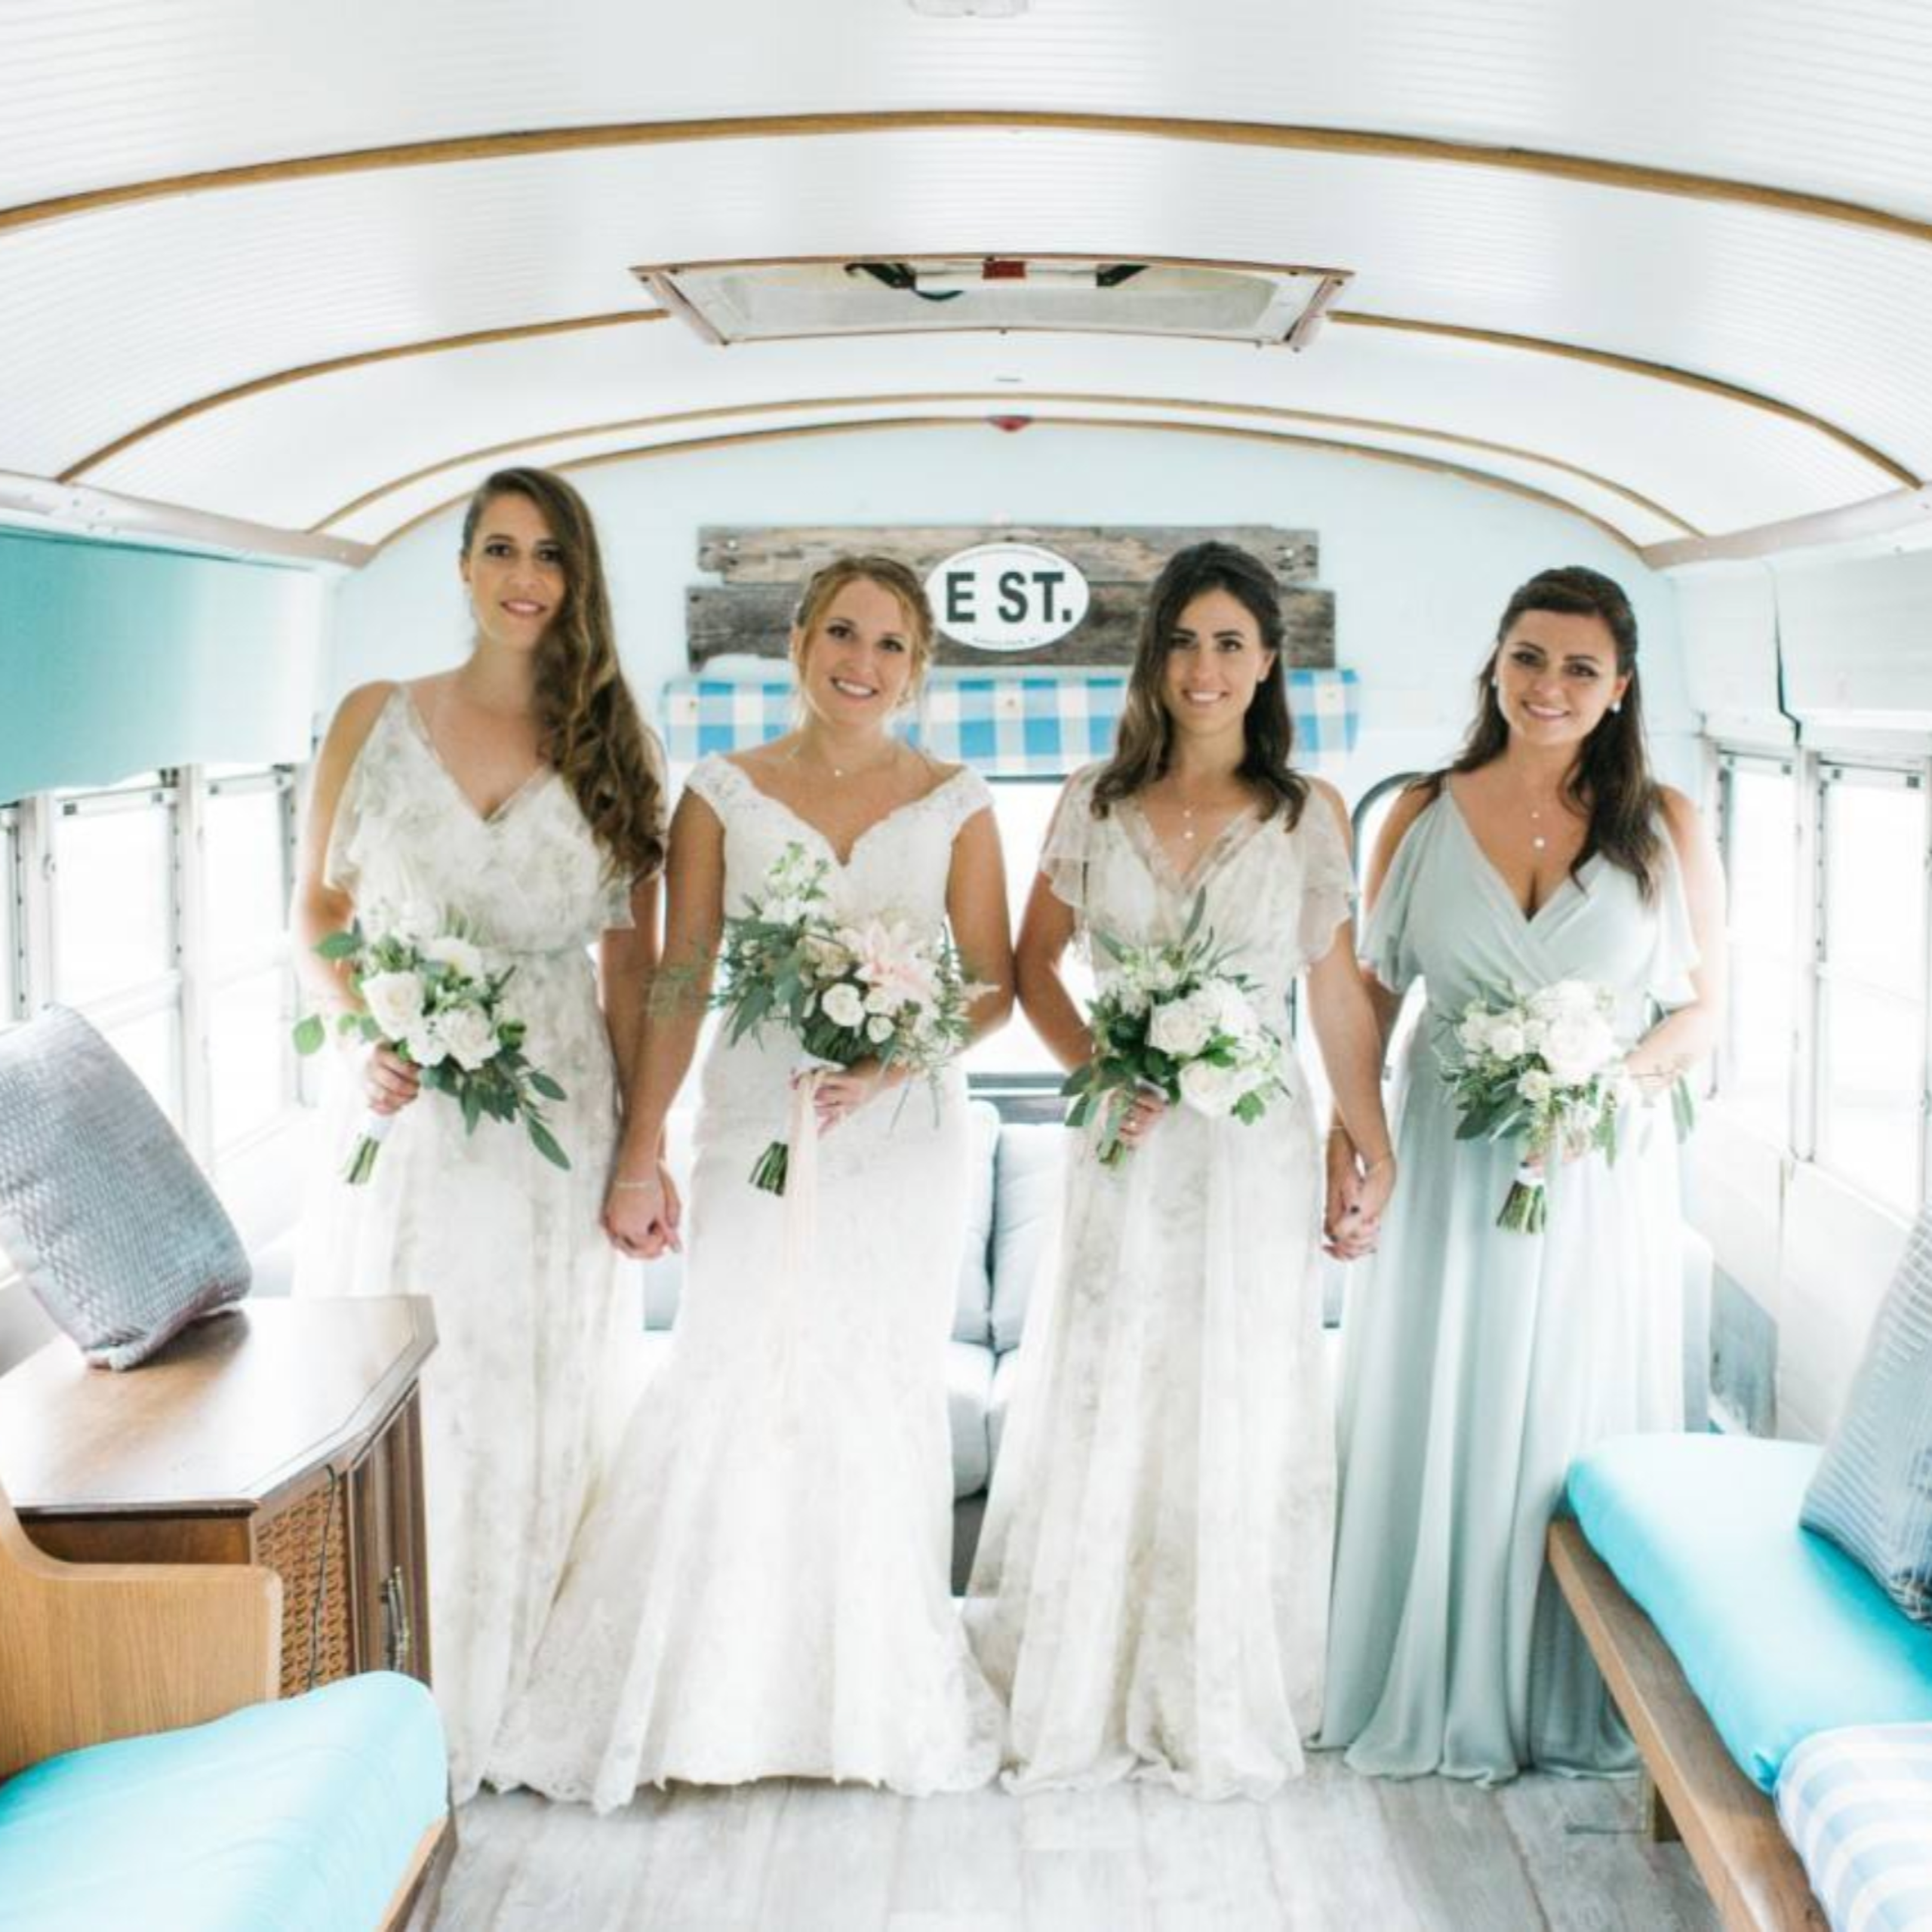 The Ultimate Wedding Party Shuttle